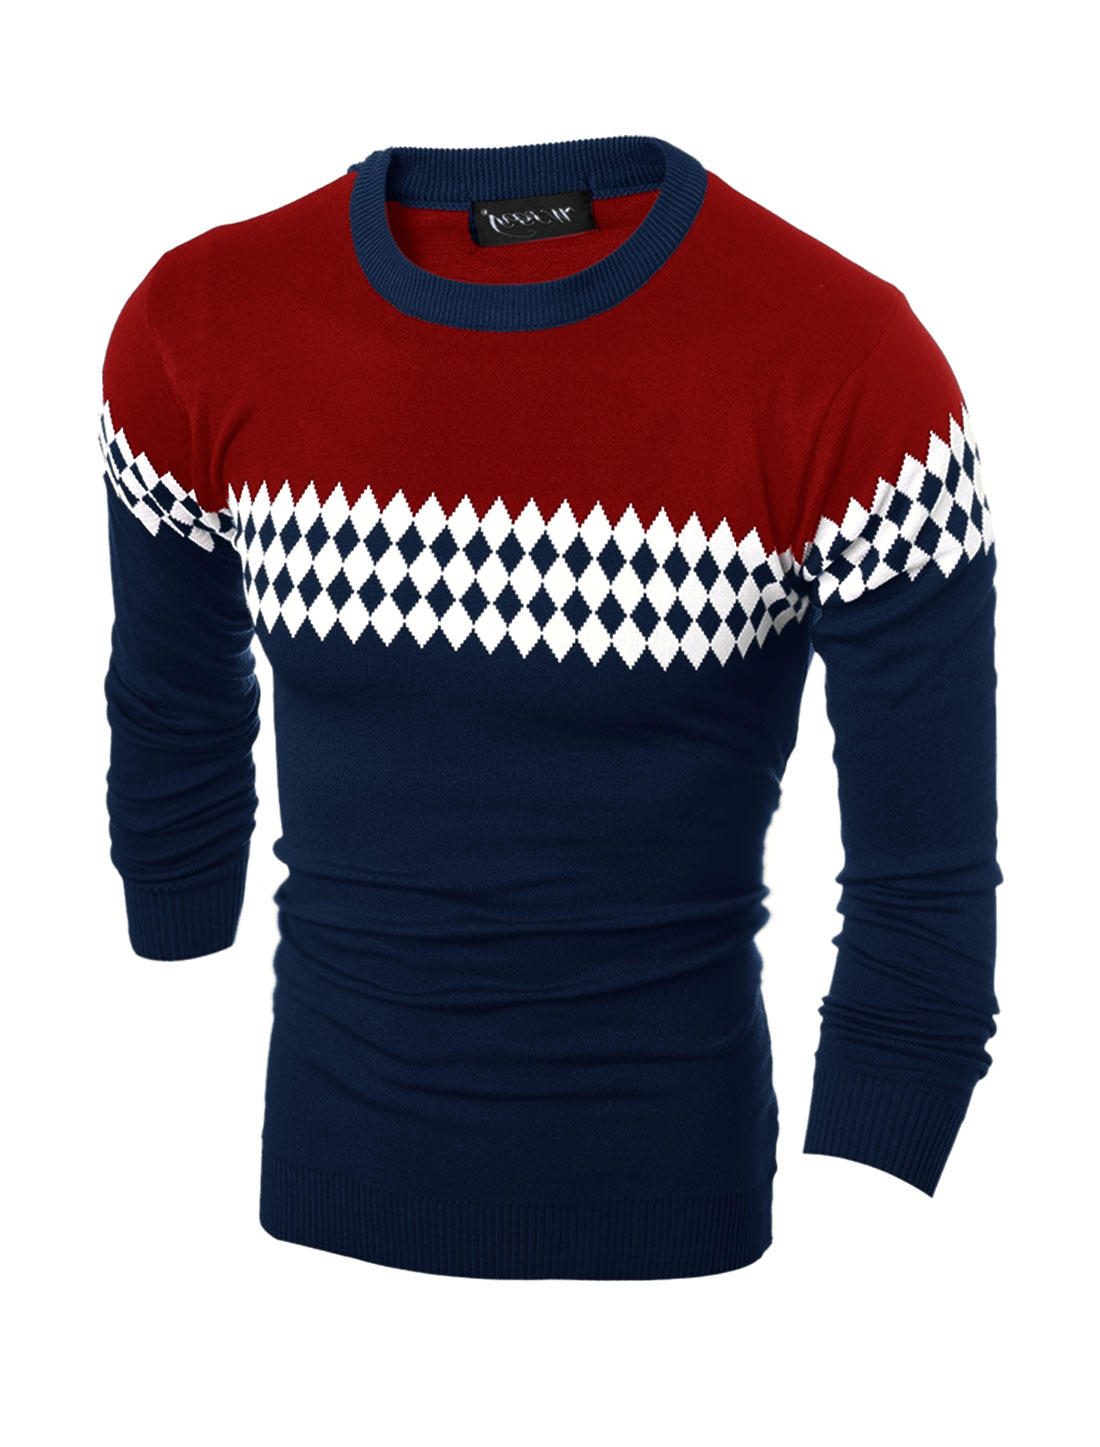 Men Crew Neck Contrast Color Argyle Slim Fit Knit Shirt Blue M